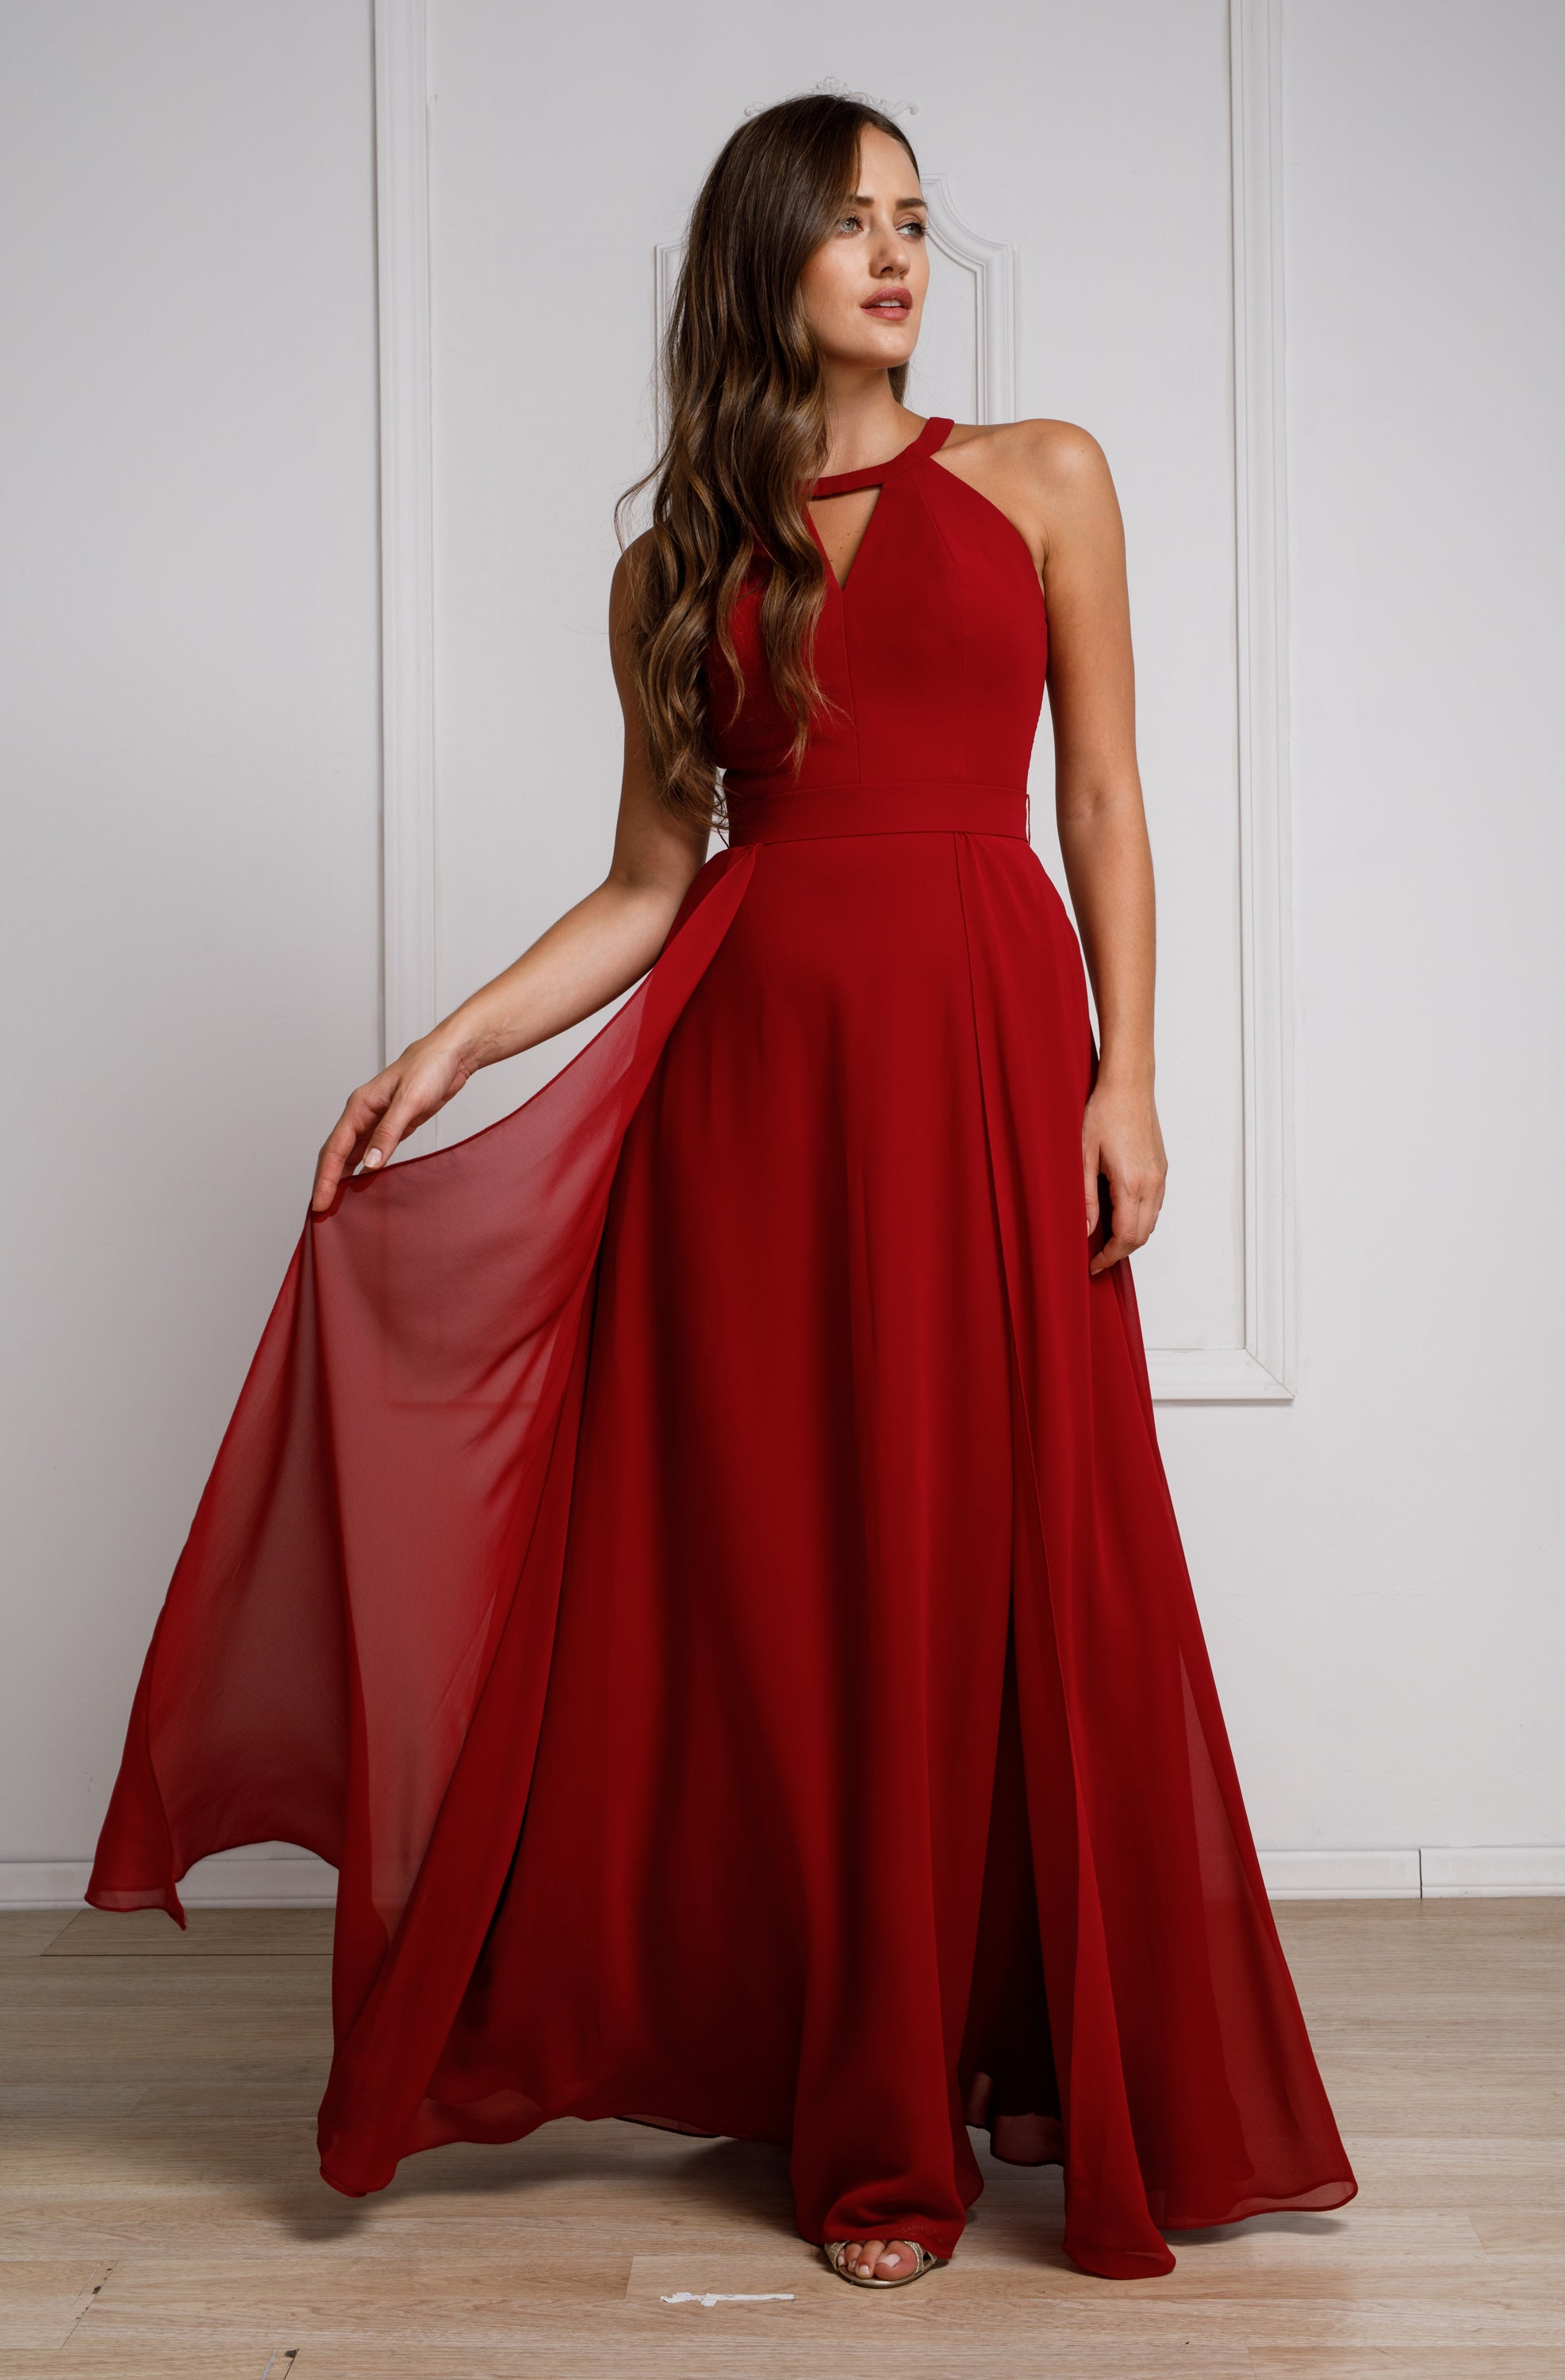 Image of High Round Neck Princess Cut Long Bridesmaid Dress in Burgundy